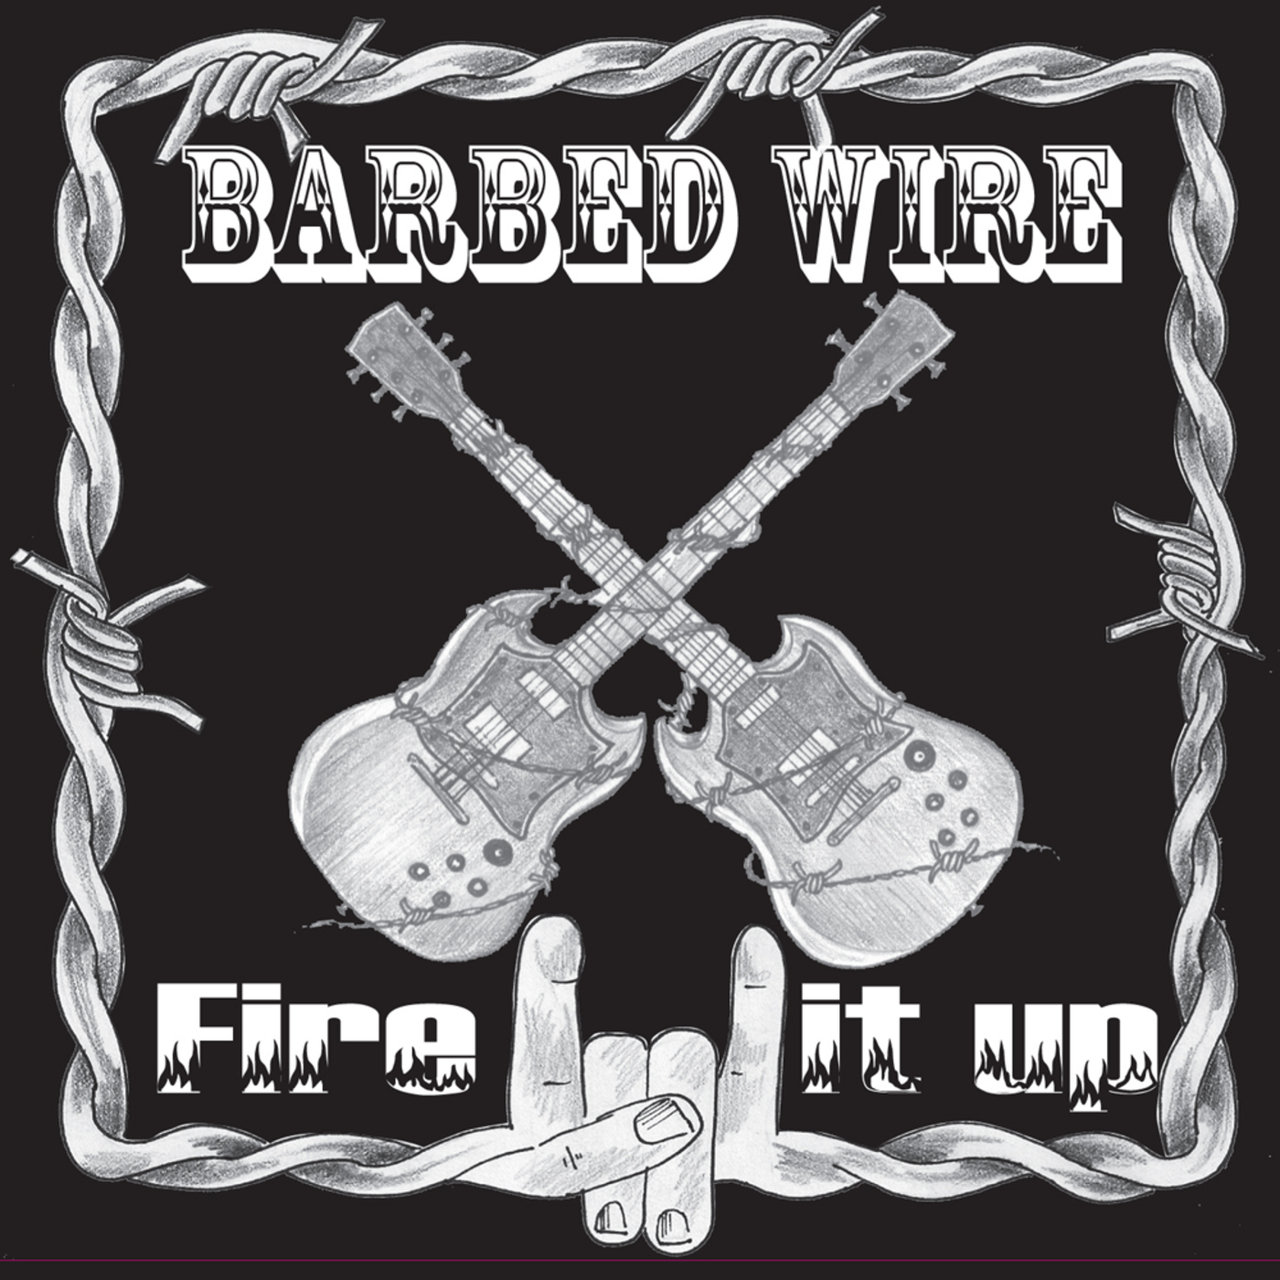 TIDAL: Listen to Barbed Wire on TIDAL